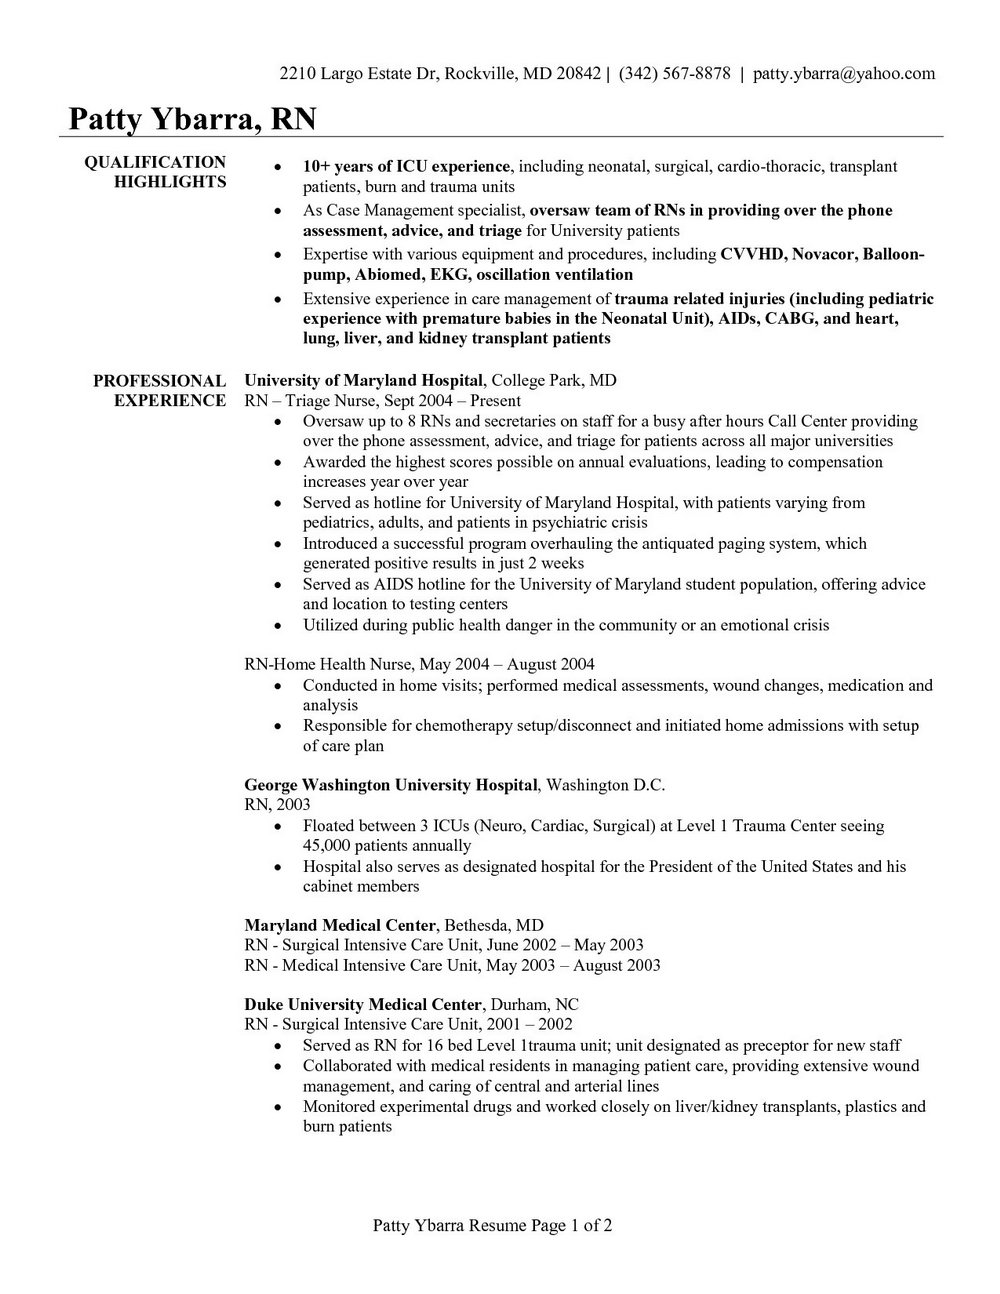 Icu Registered Nurse Resume Sample